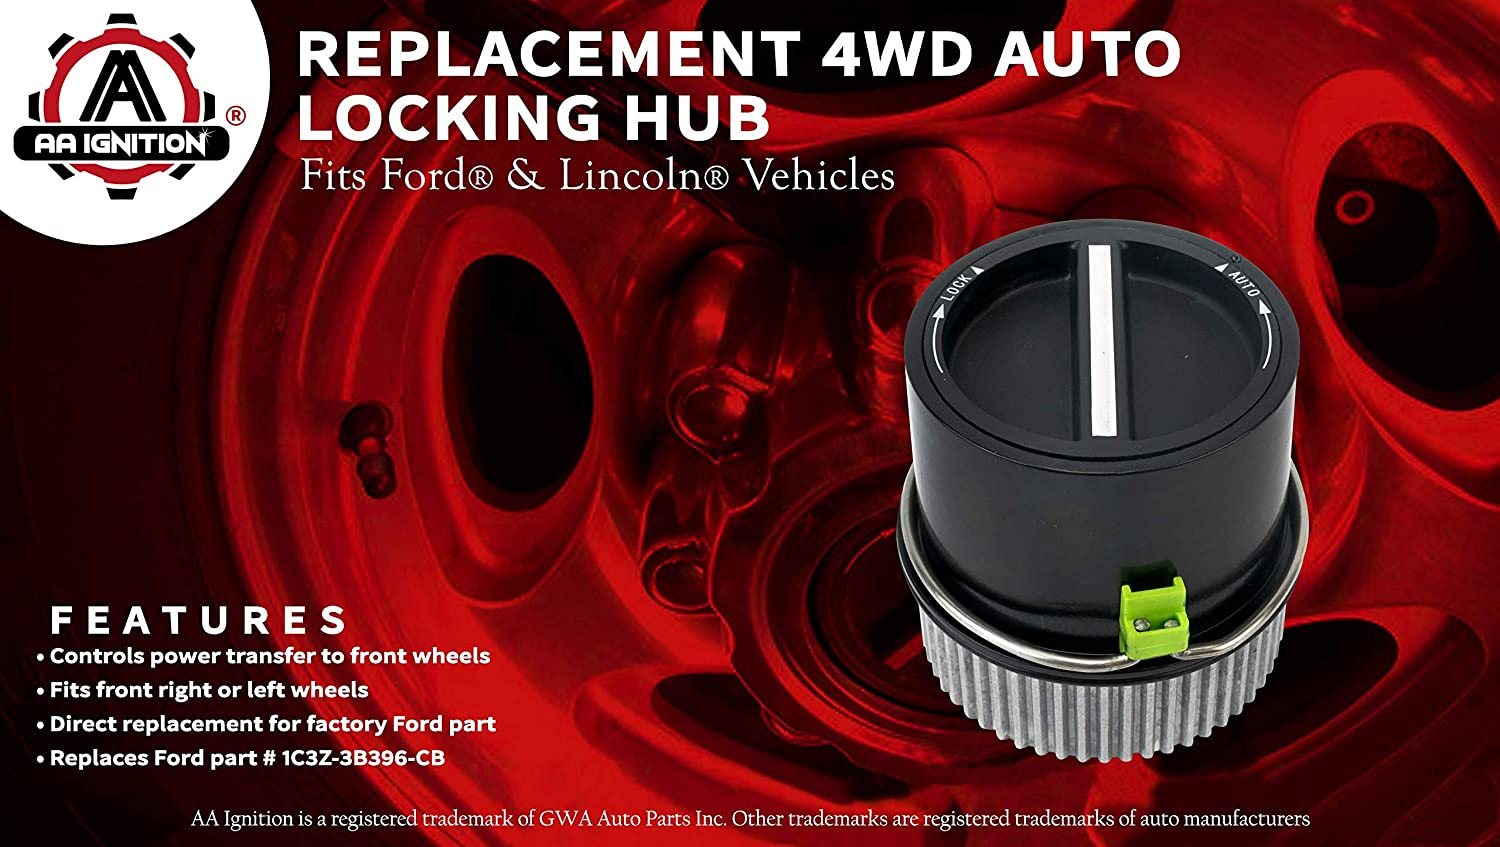 F550 Super Duty 1C3Z-3B396-CB 1C3Z3B396CB 4WD Auto Locking Hub Link Front Left or Right Navigator Replaces# 2000-2005 Excursion 2001-2002 Expedition F350 Fits 1999-2004 Ford F250 F450